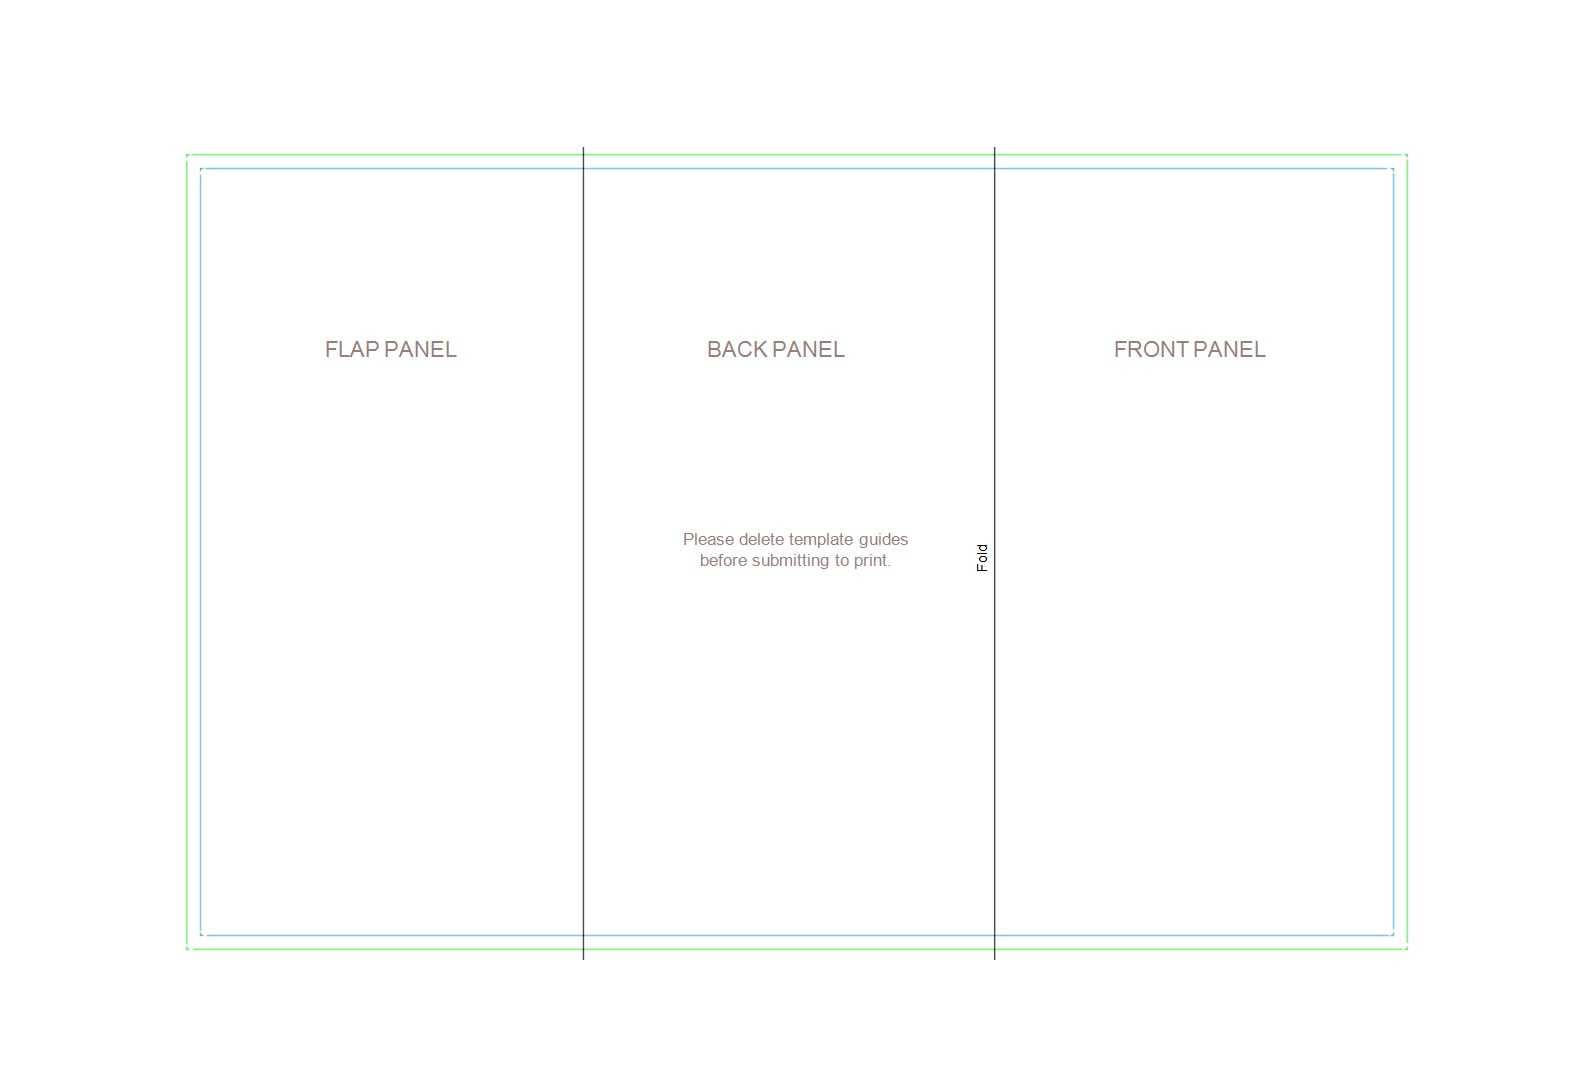 50 Free Pamphlet Templates [Word / Google Docs] ᐅ Templatelab Within Google Docs Brochure Template